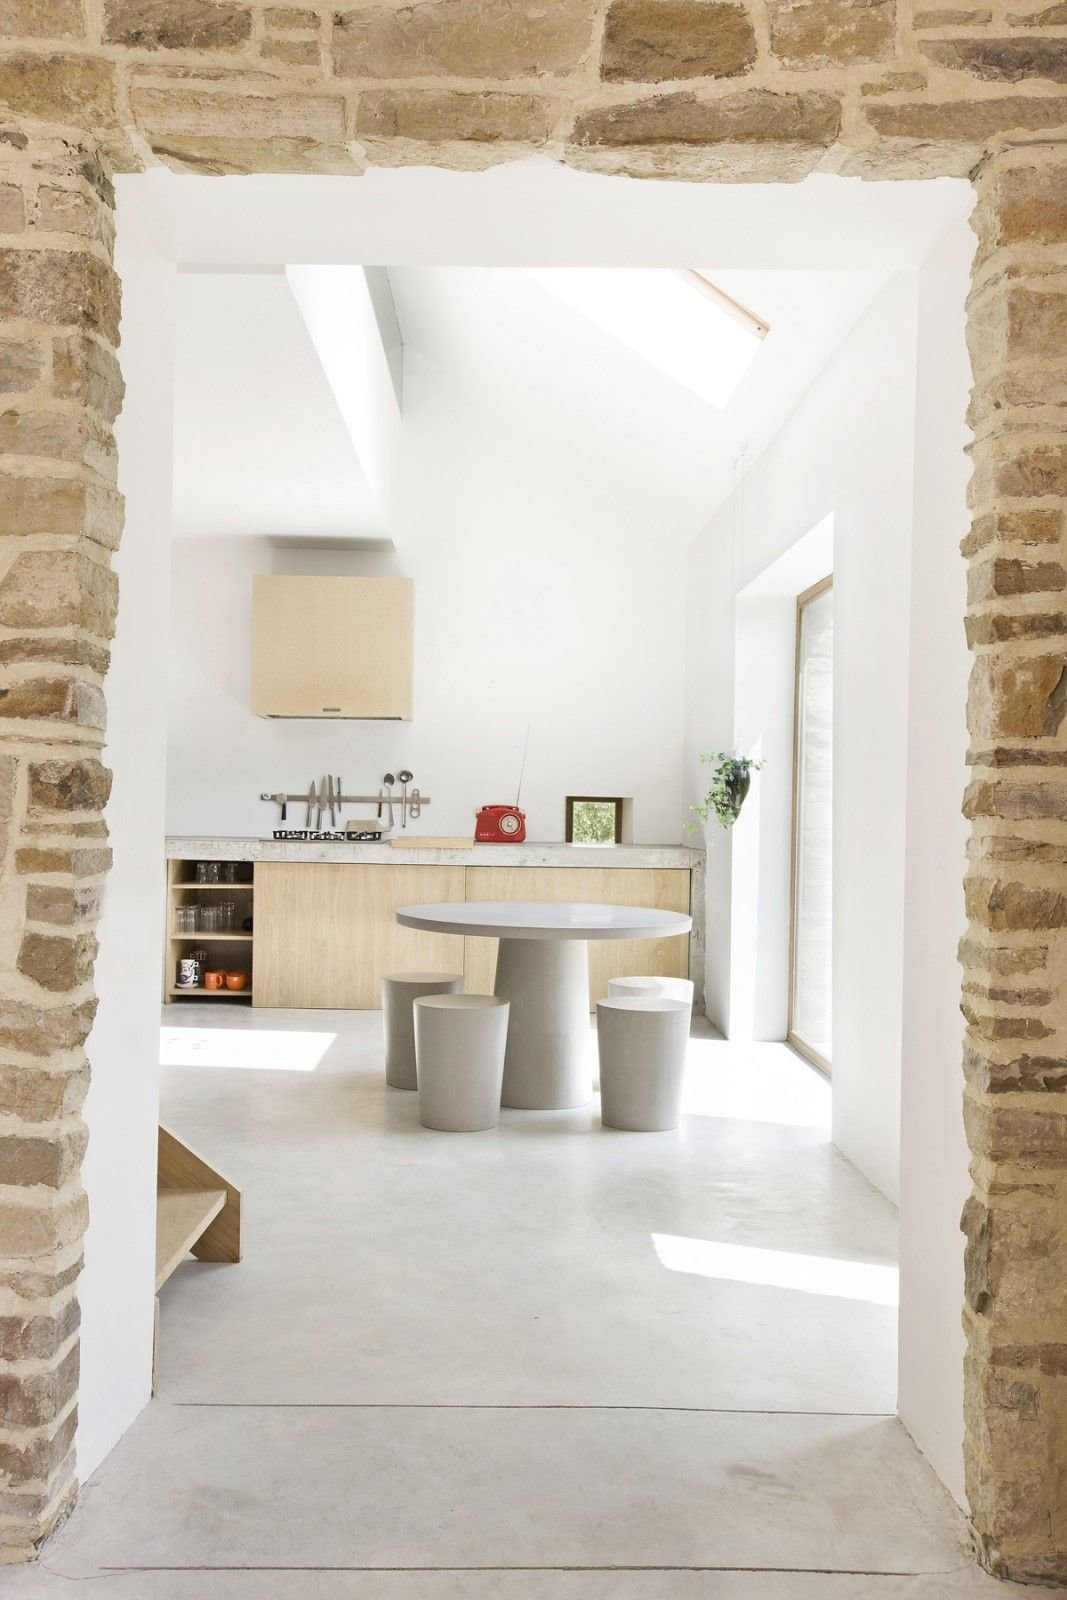 Transformation of an old barn into dwelling with external terrace. Martiat+Durnez Architectes   Modern Rustic by Gessato